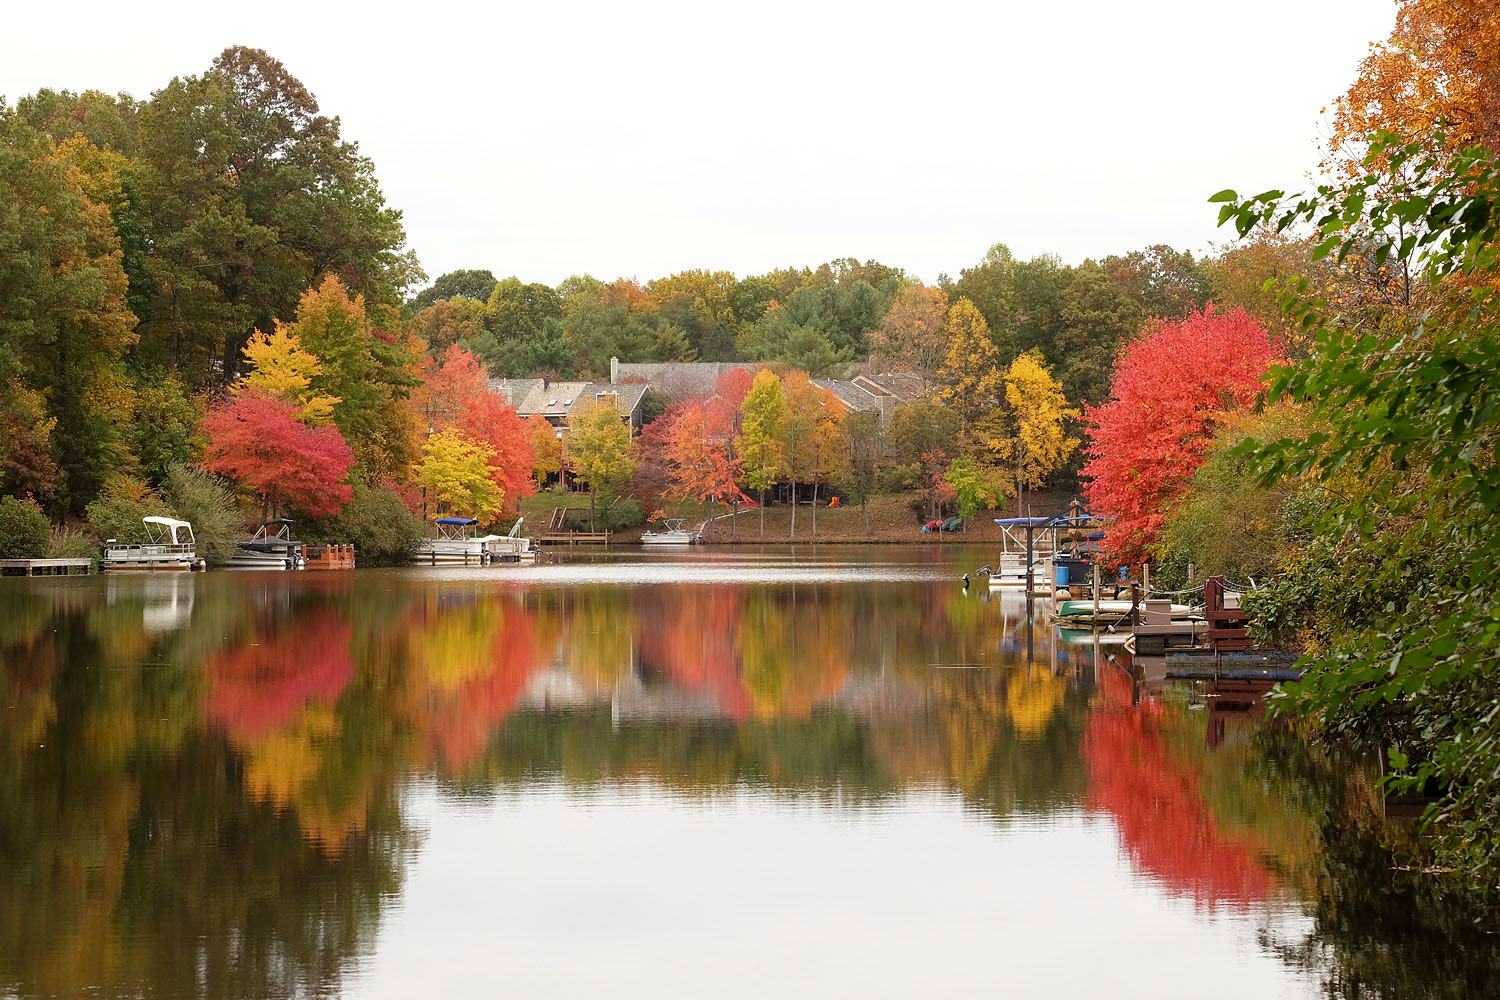 Lake Audubon in Reston